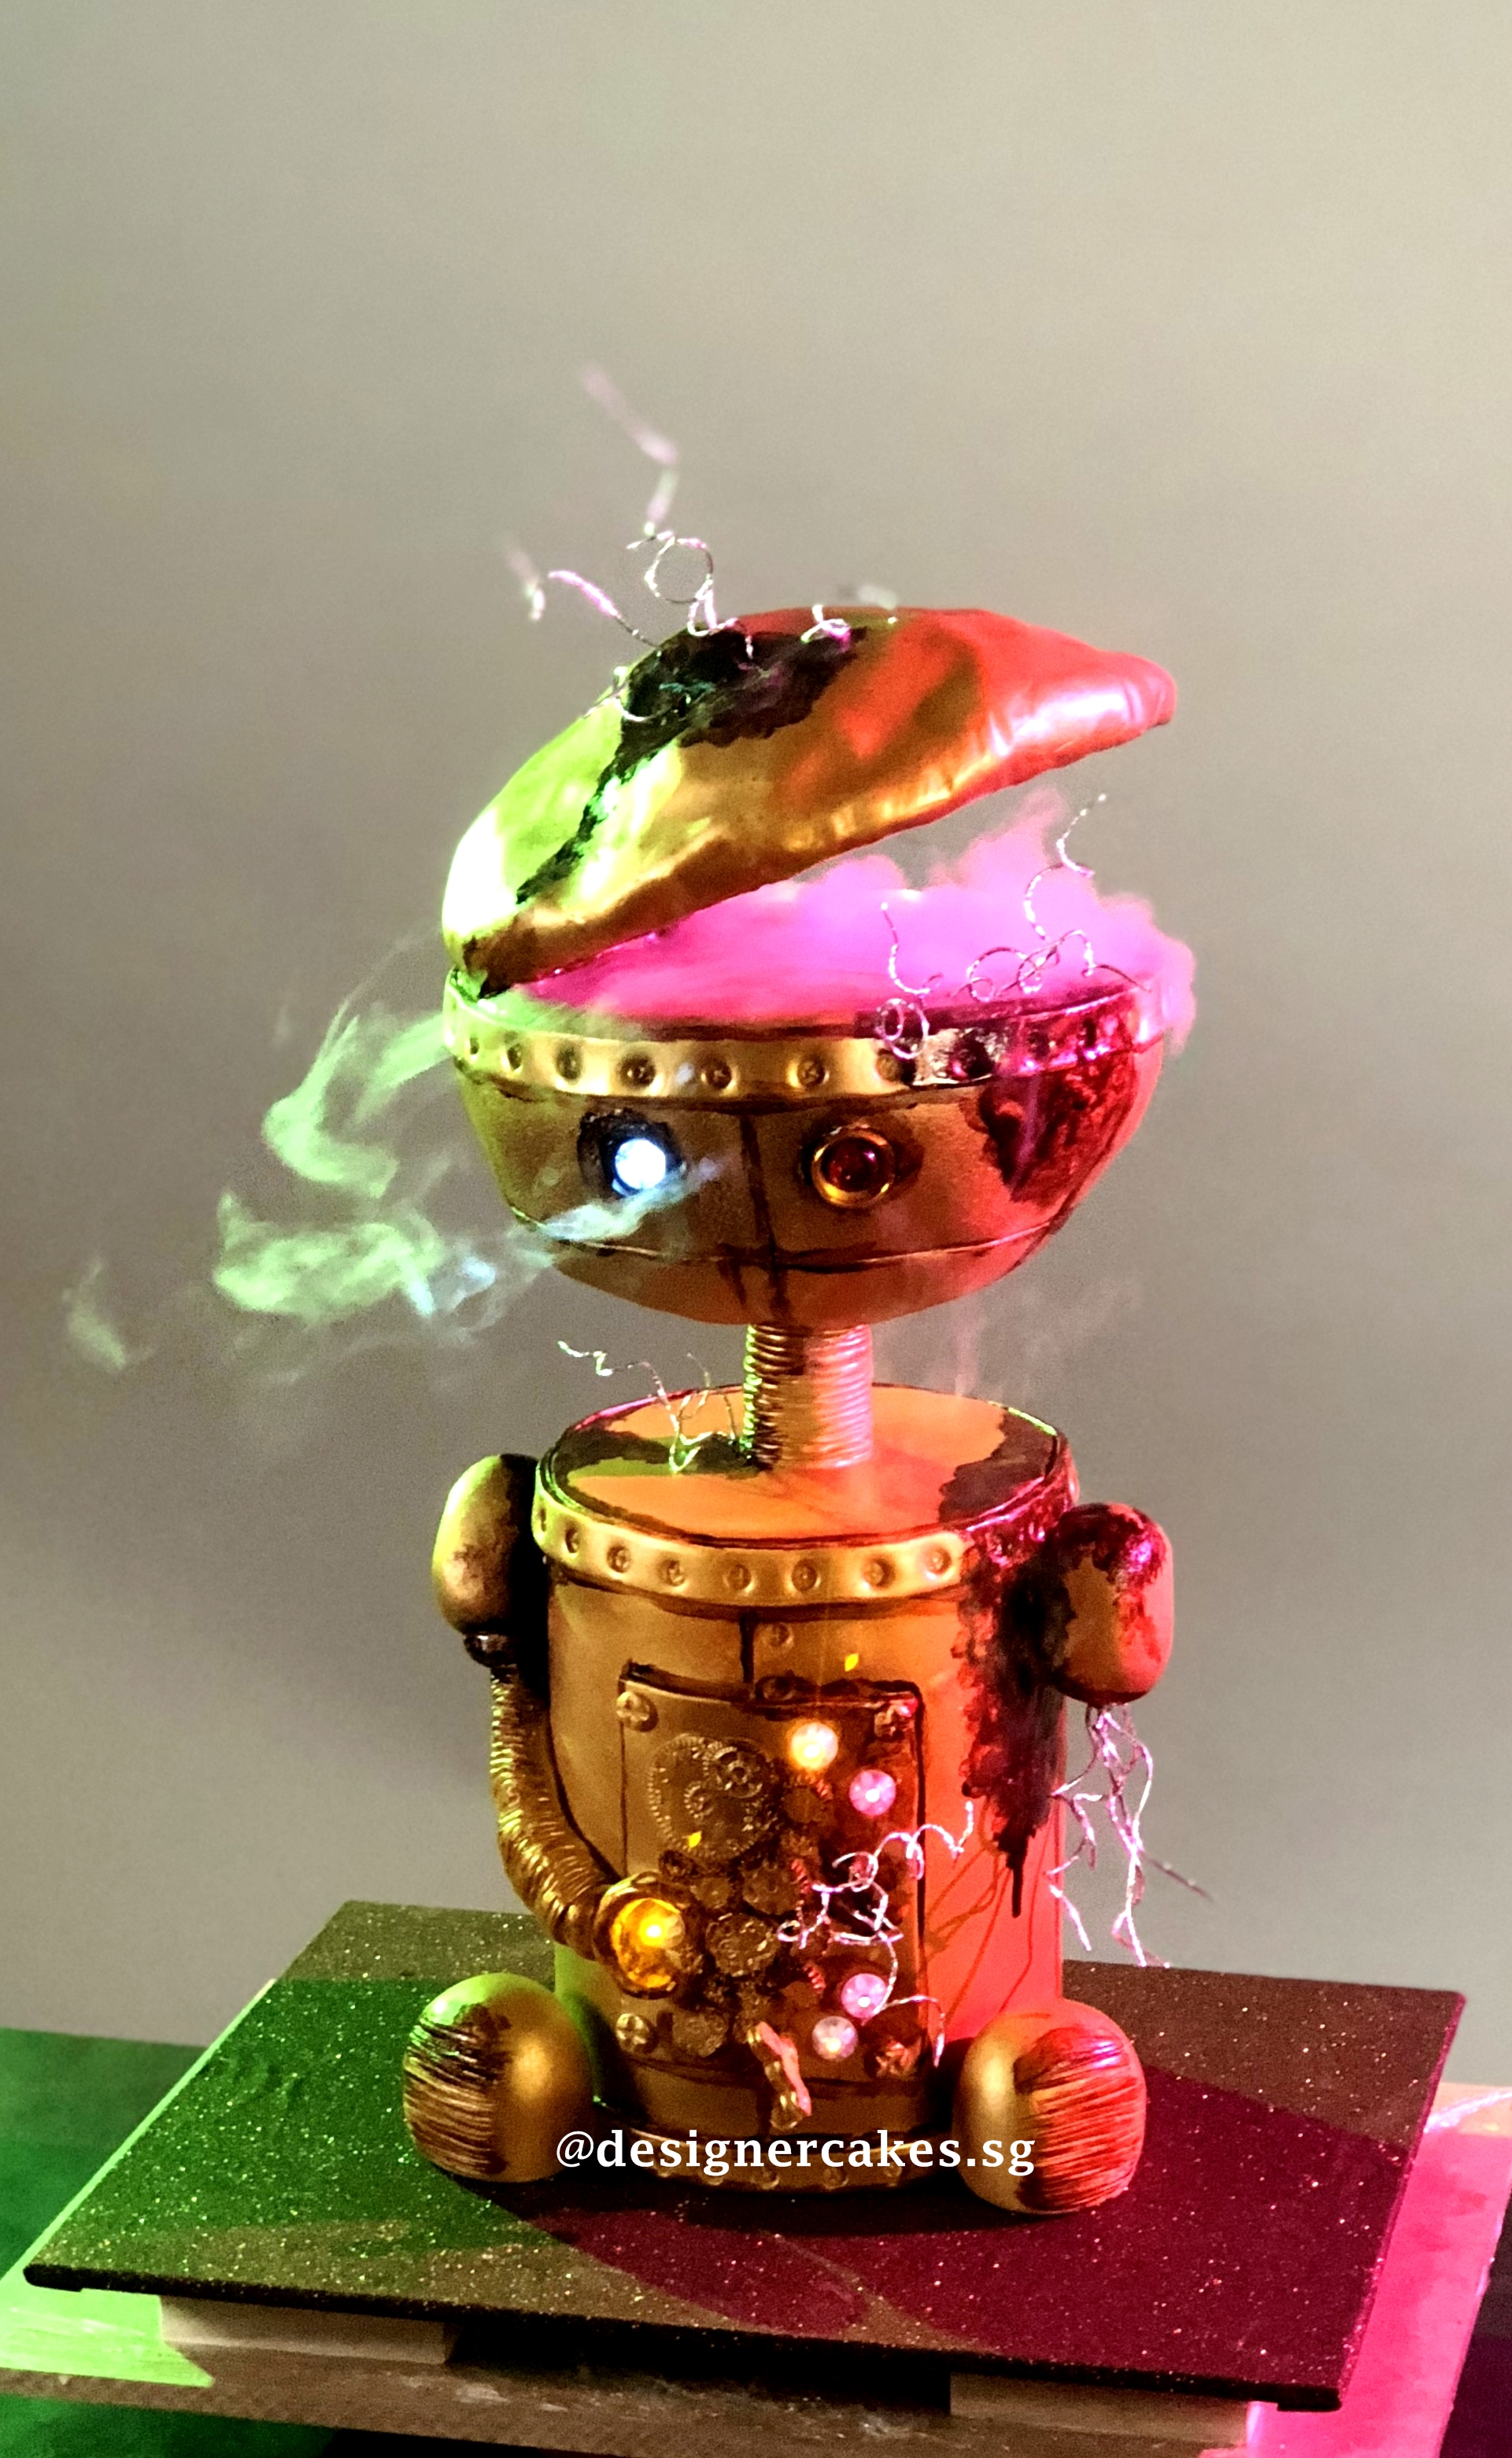 Broken, Smoking Robot Cake With Lights (1)